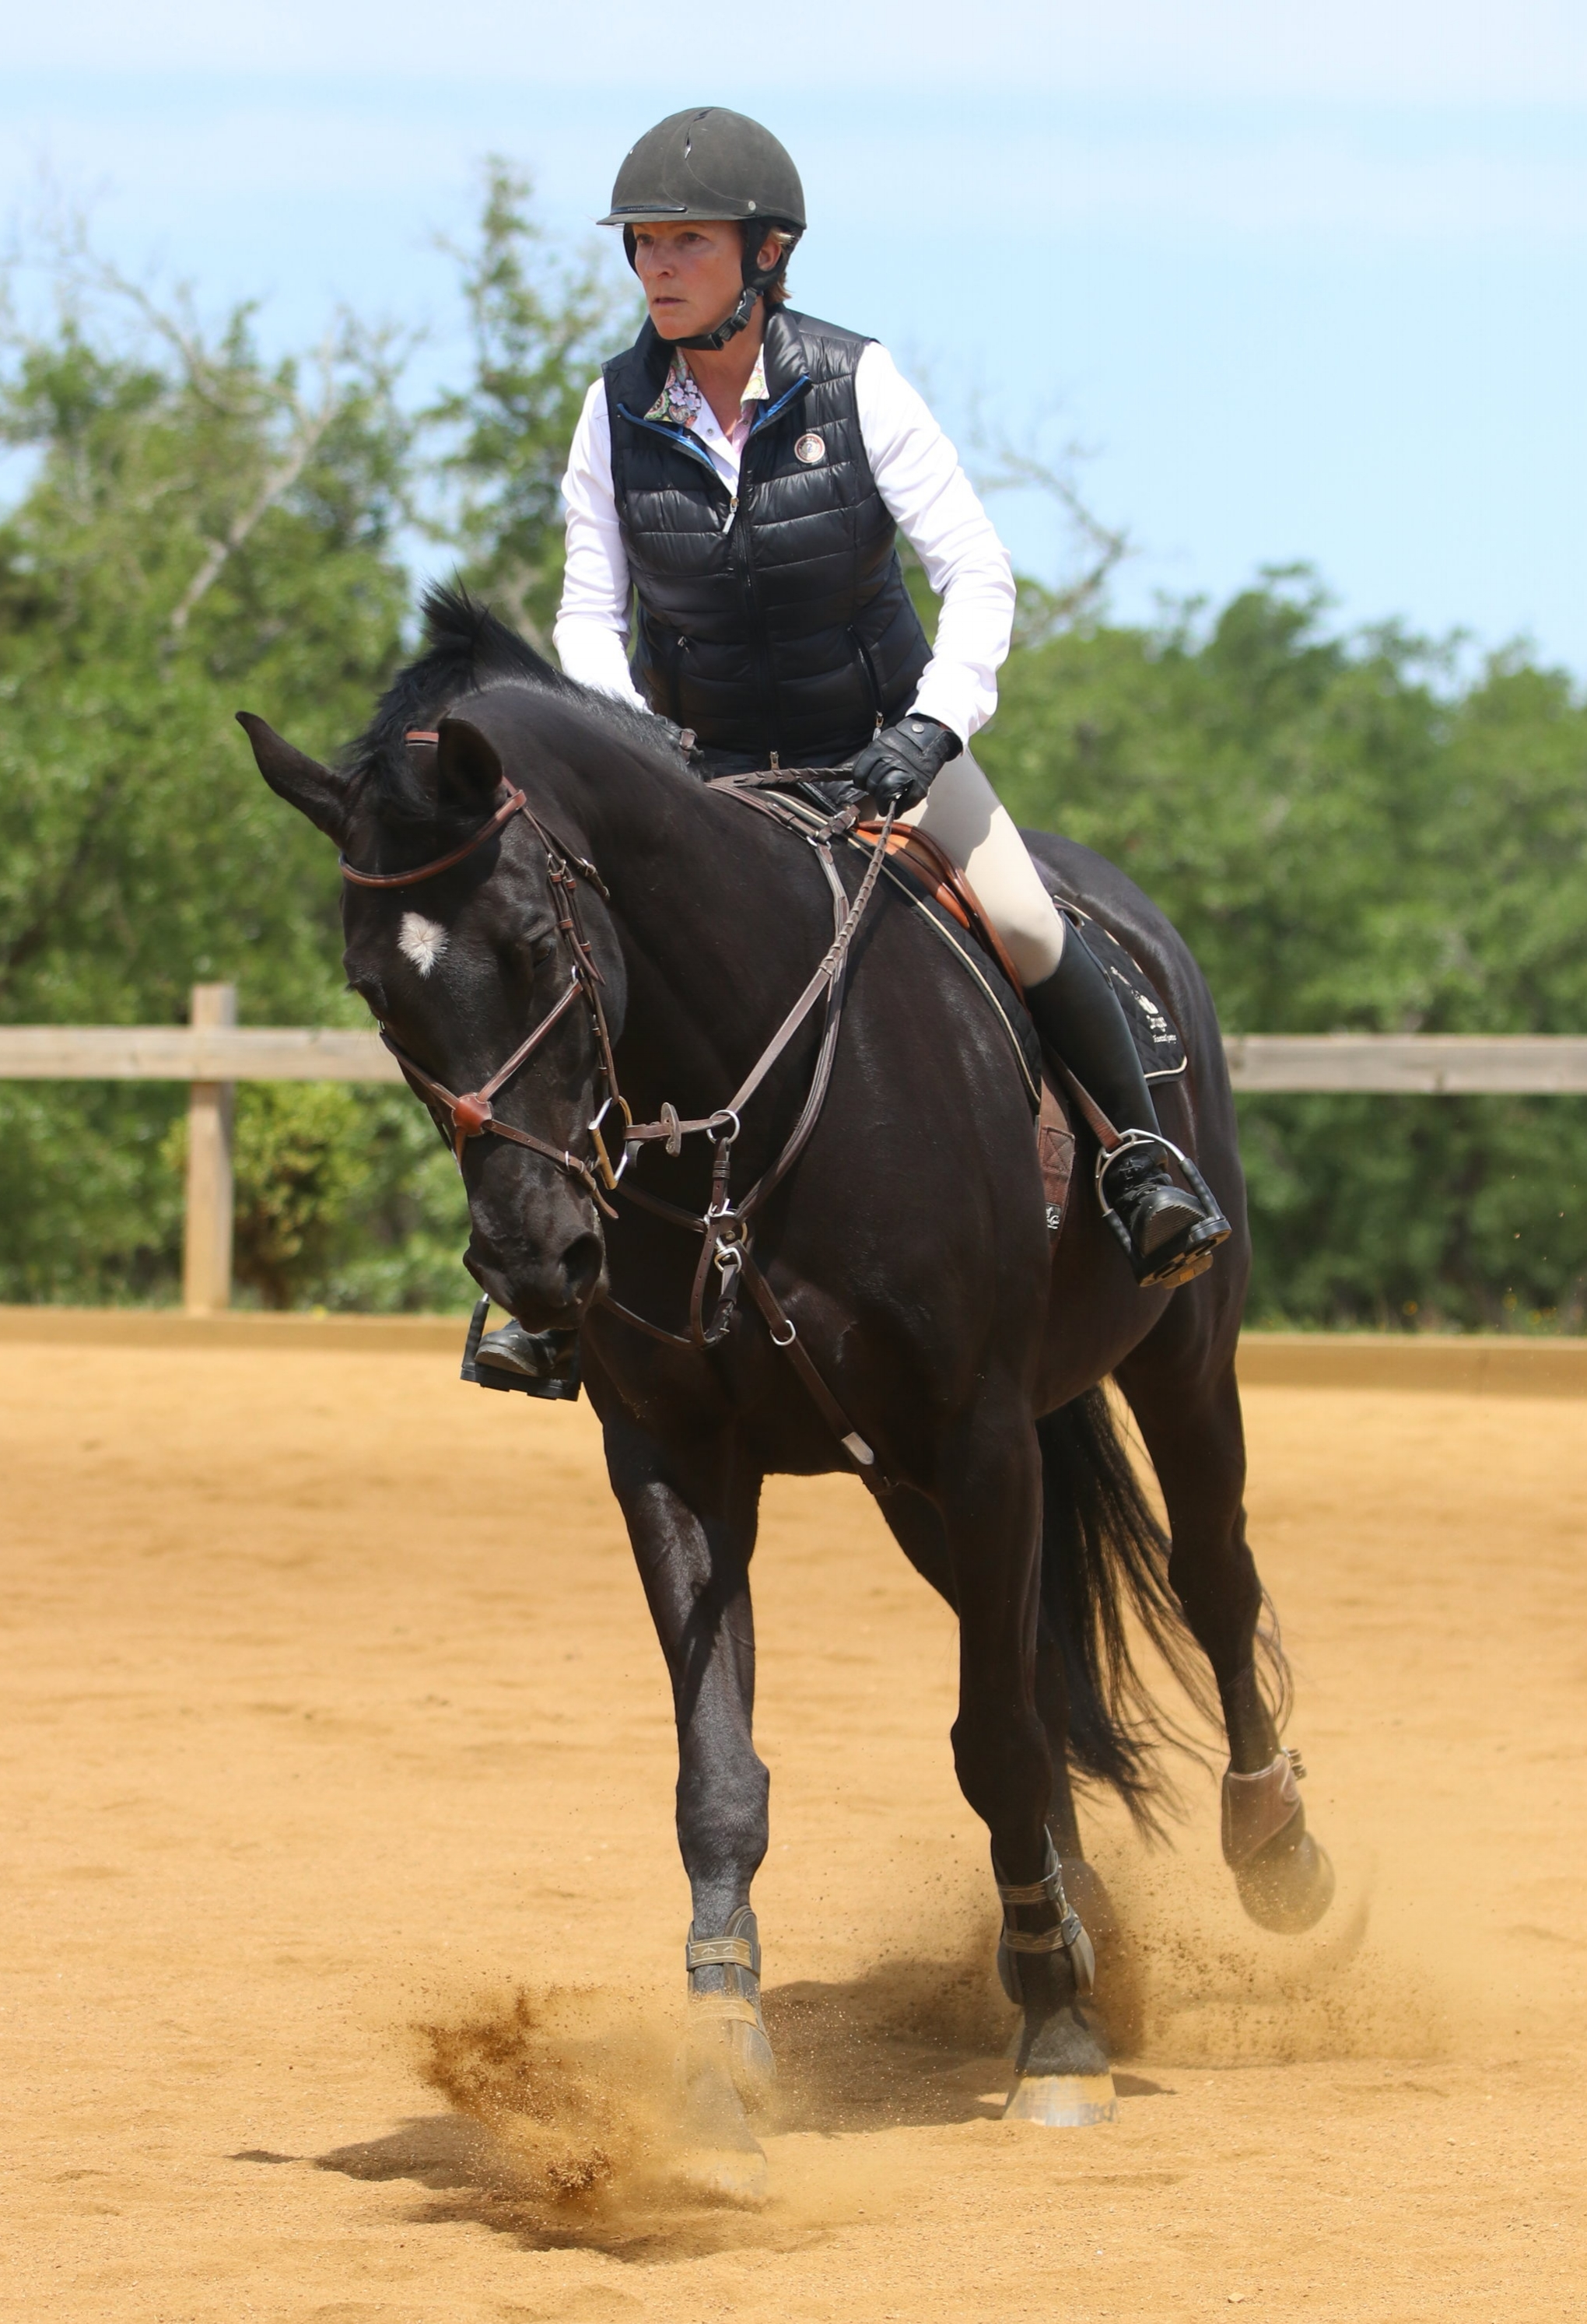 horse training in Austin Texas | Coraggio Equestrian | Train your horse in Austin Tx